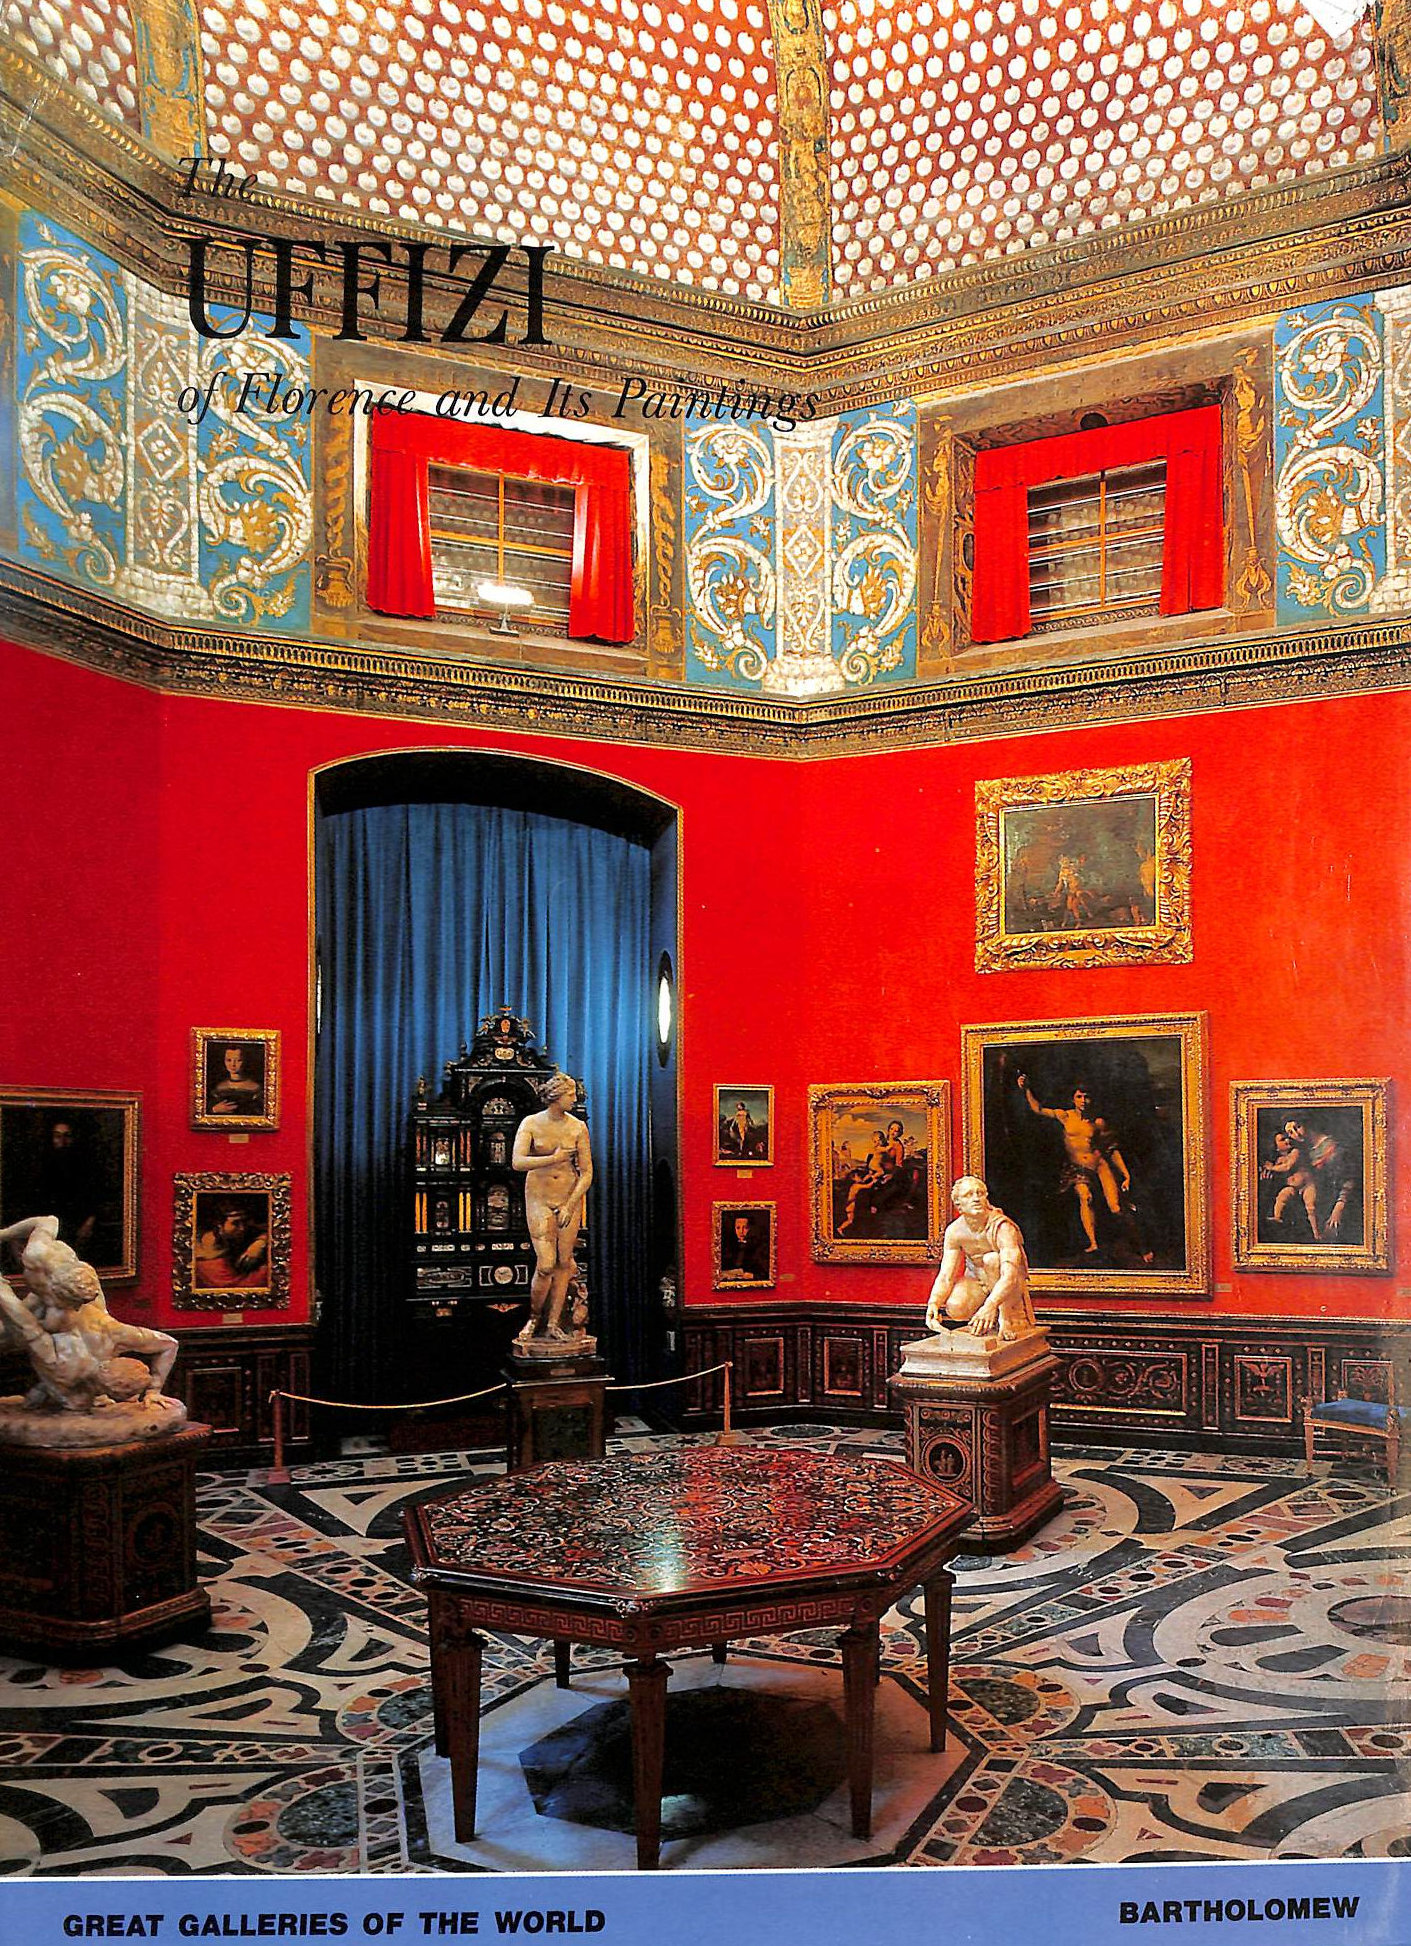 Image for Uffizi Of Florence And Its Paintings (Great Galleries Of The World)